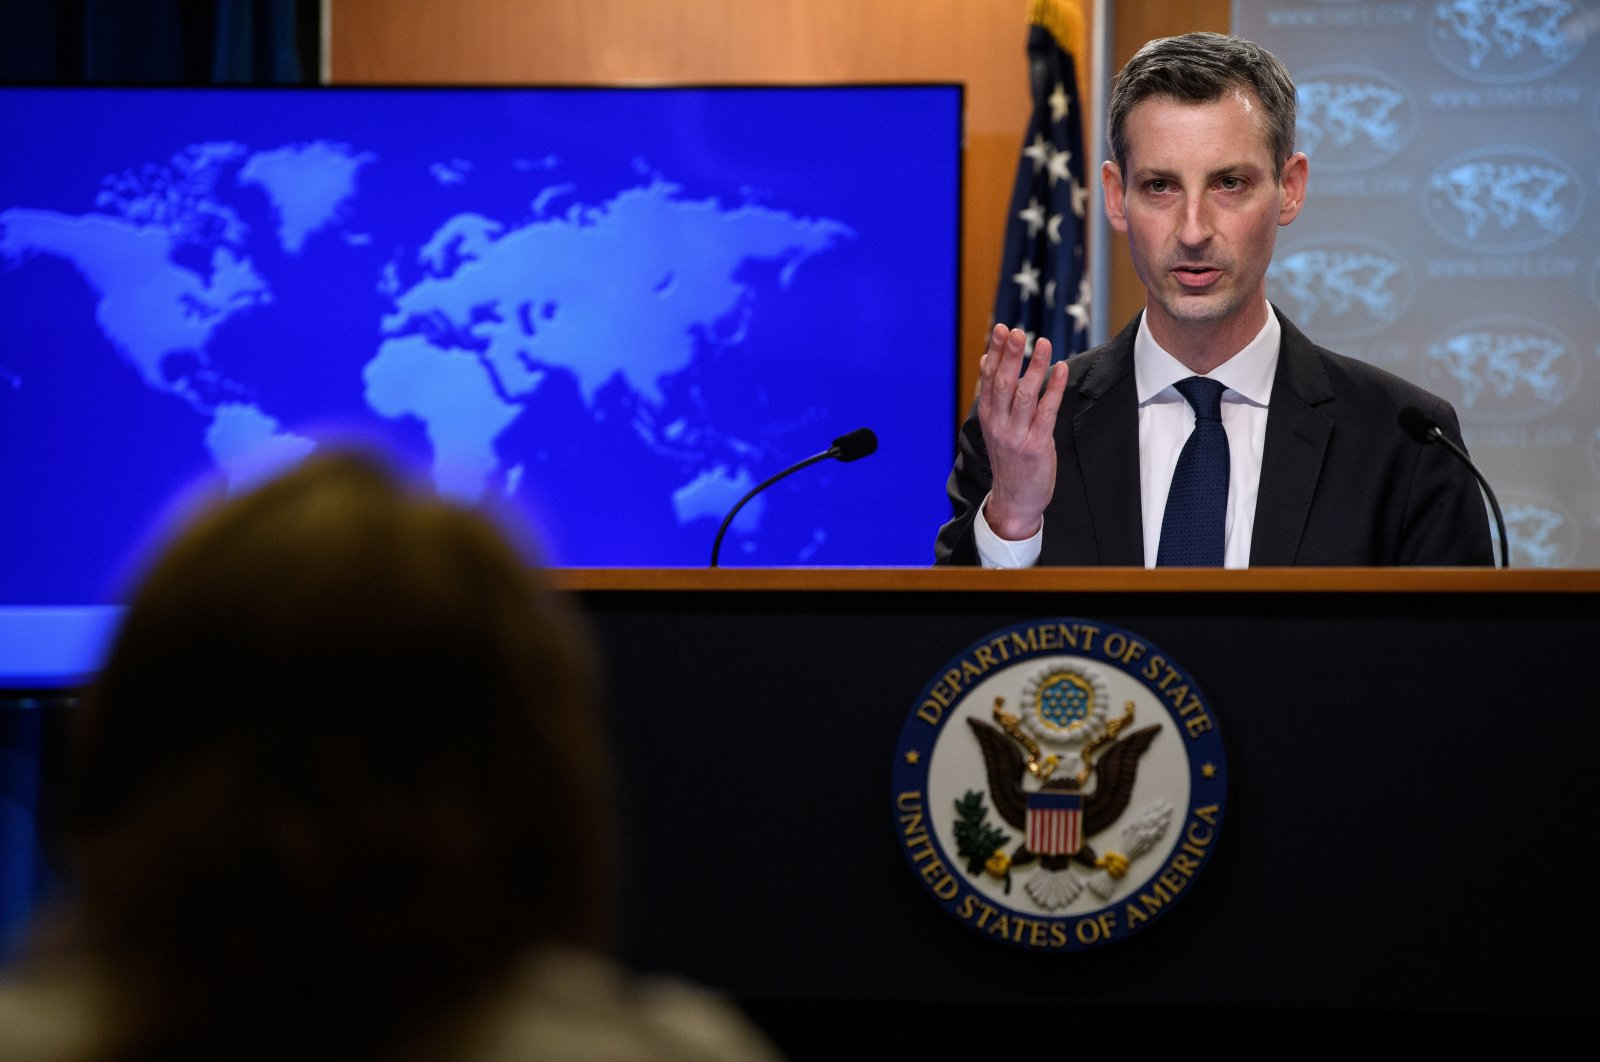 U.S. State Department spokesperson Ned Price speaks at his first daily press briefing at the State Department in Washington, U.S. on Feb. 2, 2021. (Reuters Photo)